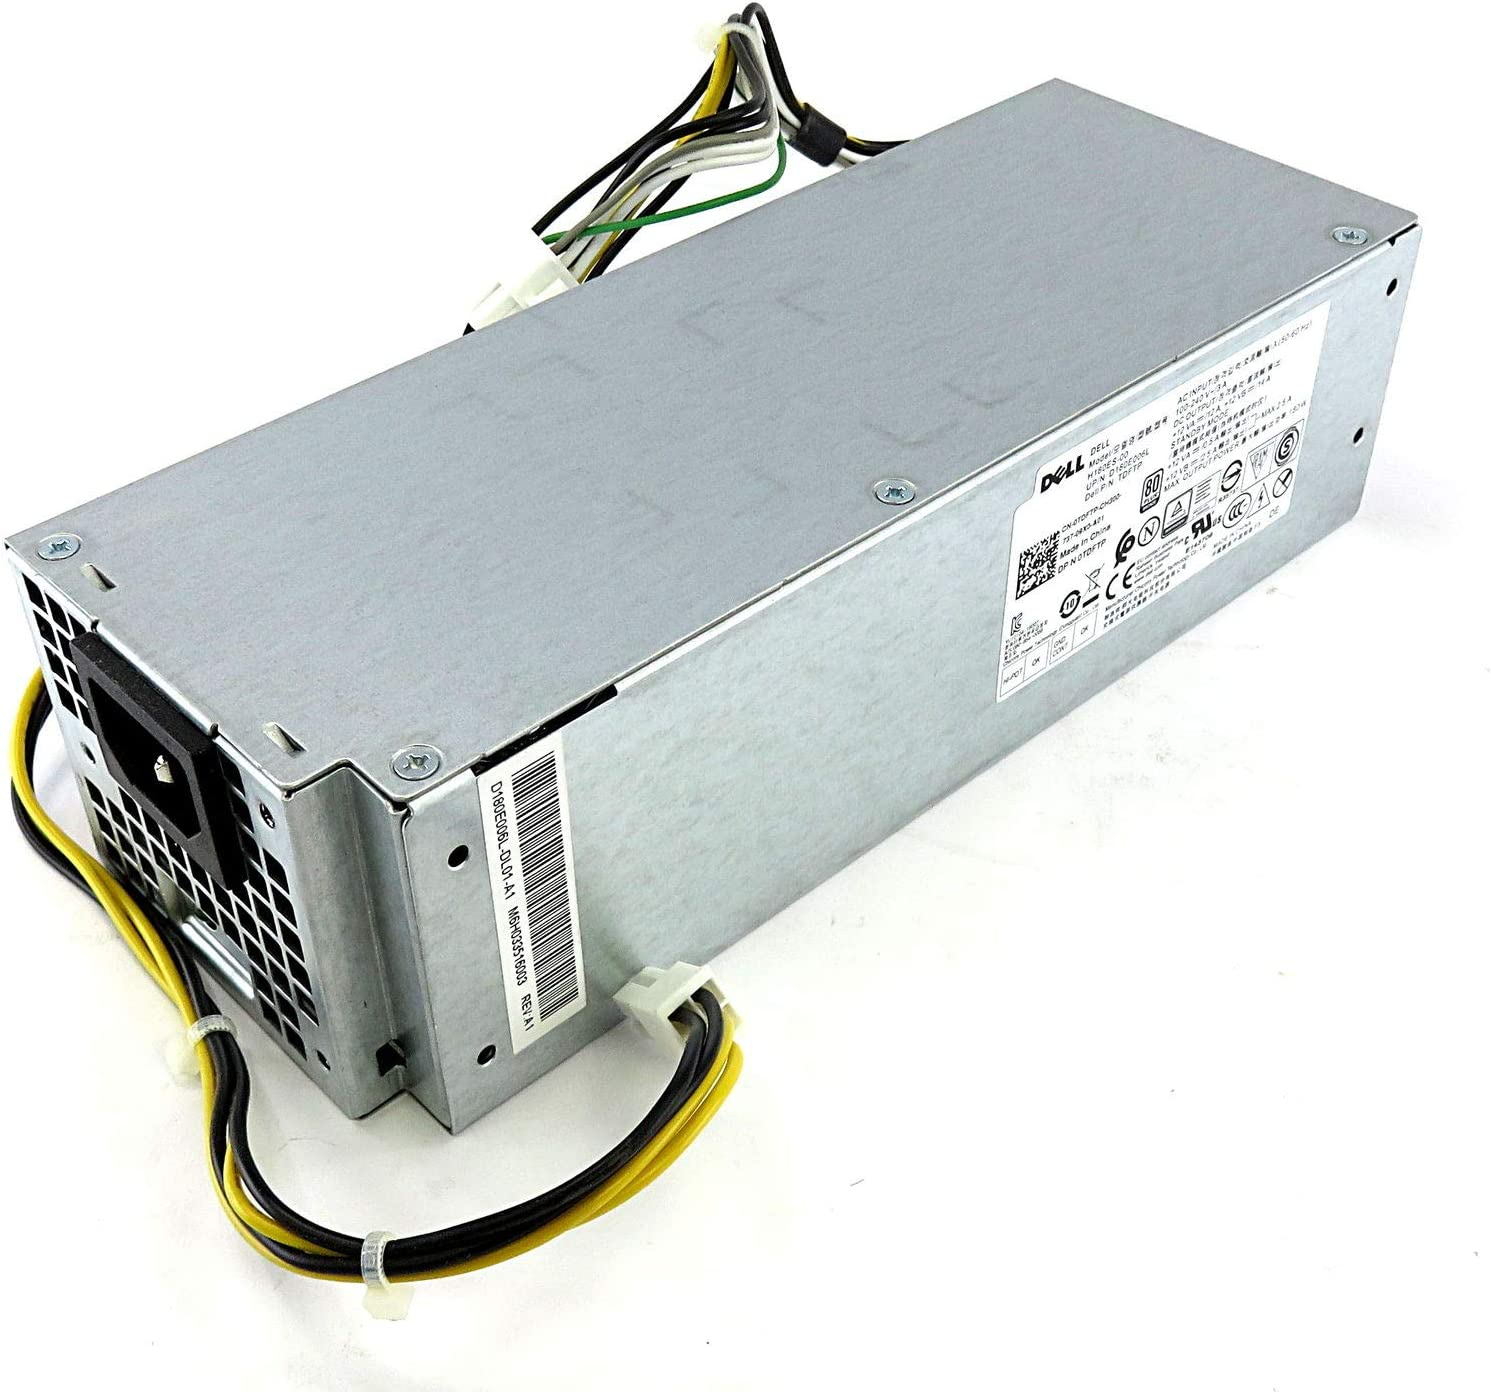 New Genuine PS for Dell Precision 180W Power Supply 081VD0 81VD0